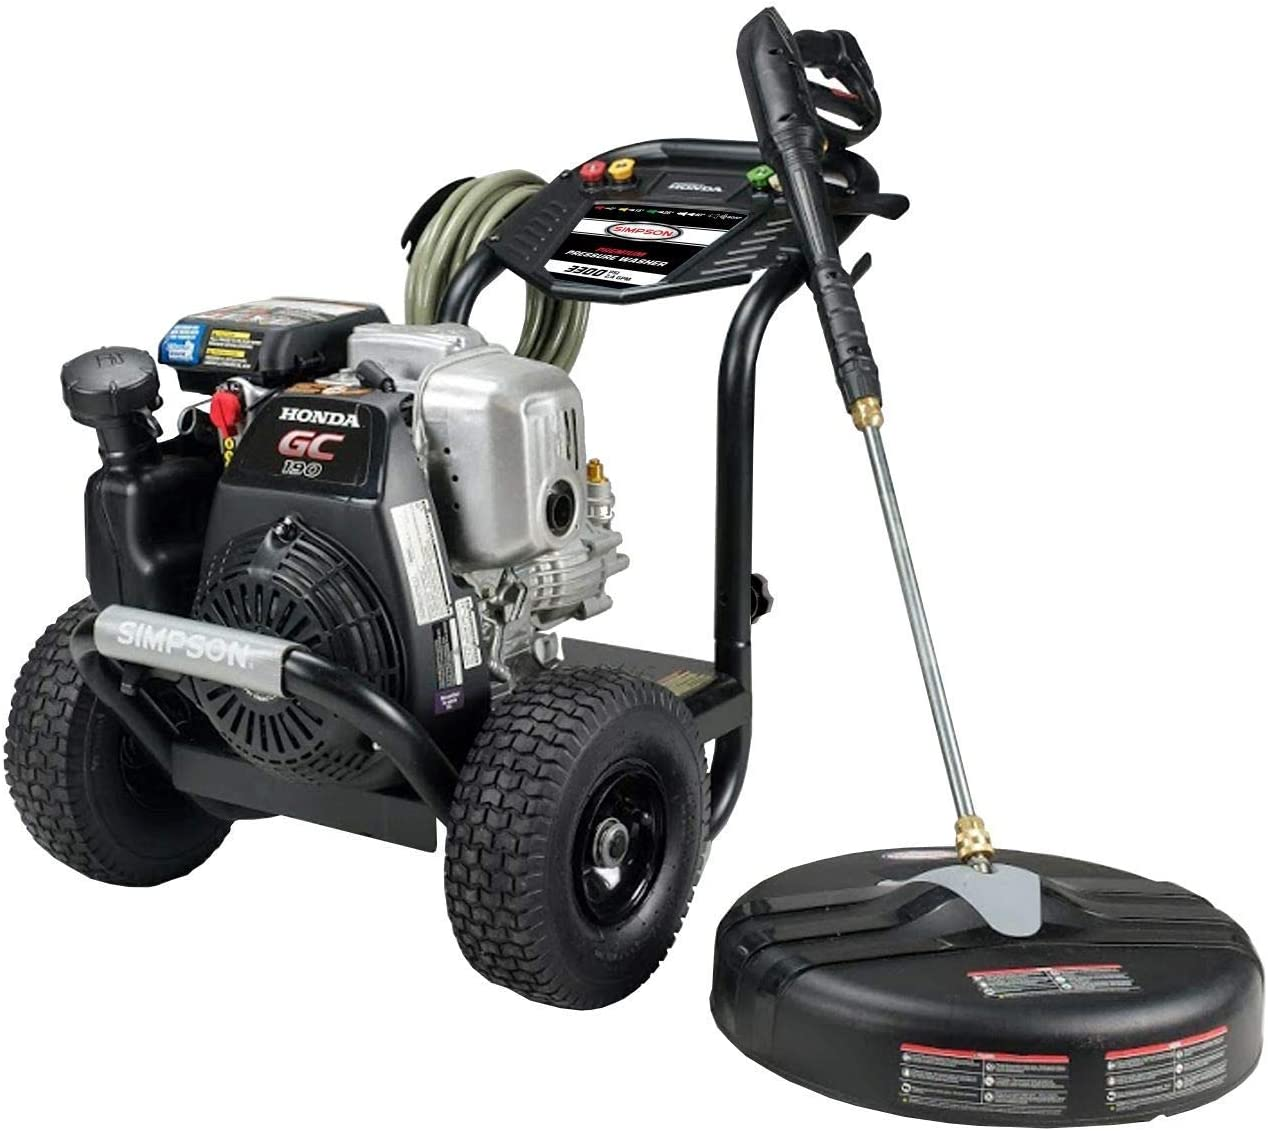 SIMPSON Cleaning MS61033-S 3300 PSI Pressure Washer